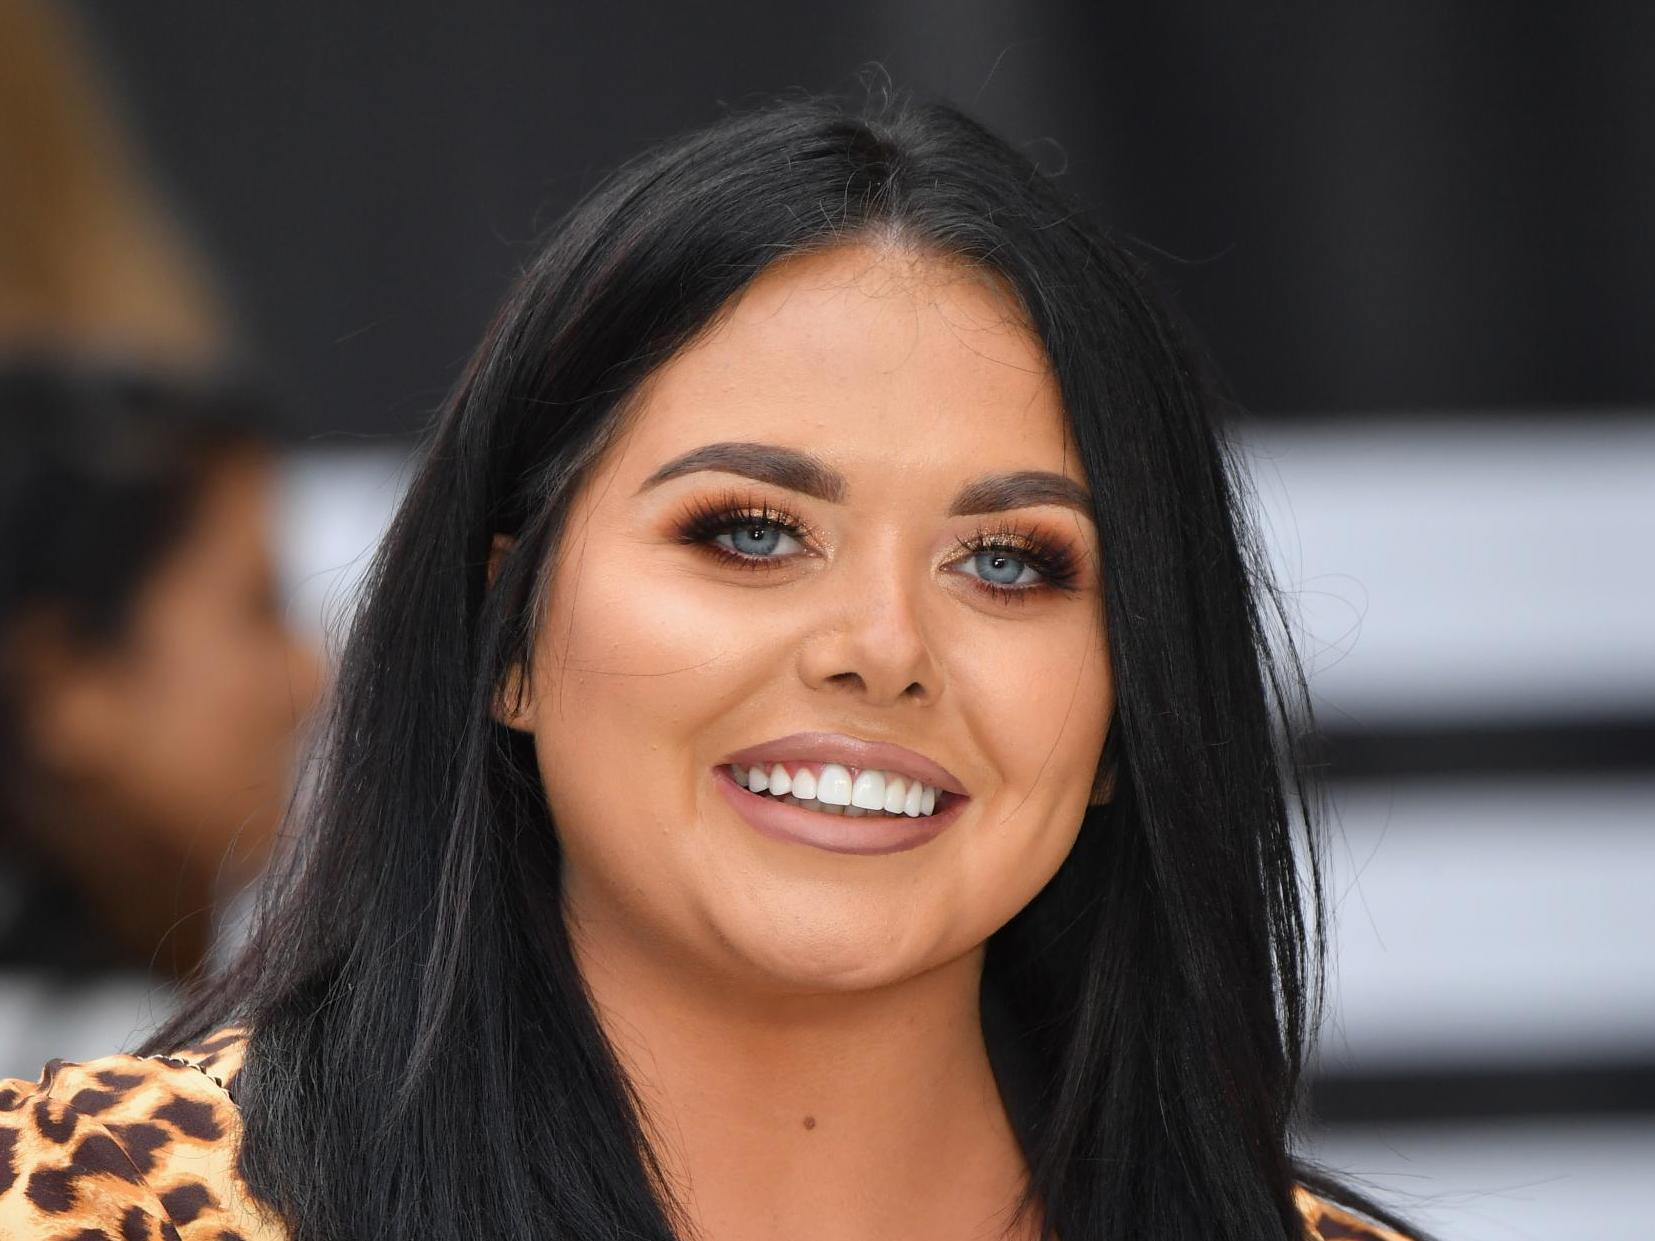 Scarlett Moffatt says body confidence was helped by living with Namibia tribe who praised her body shape